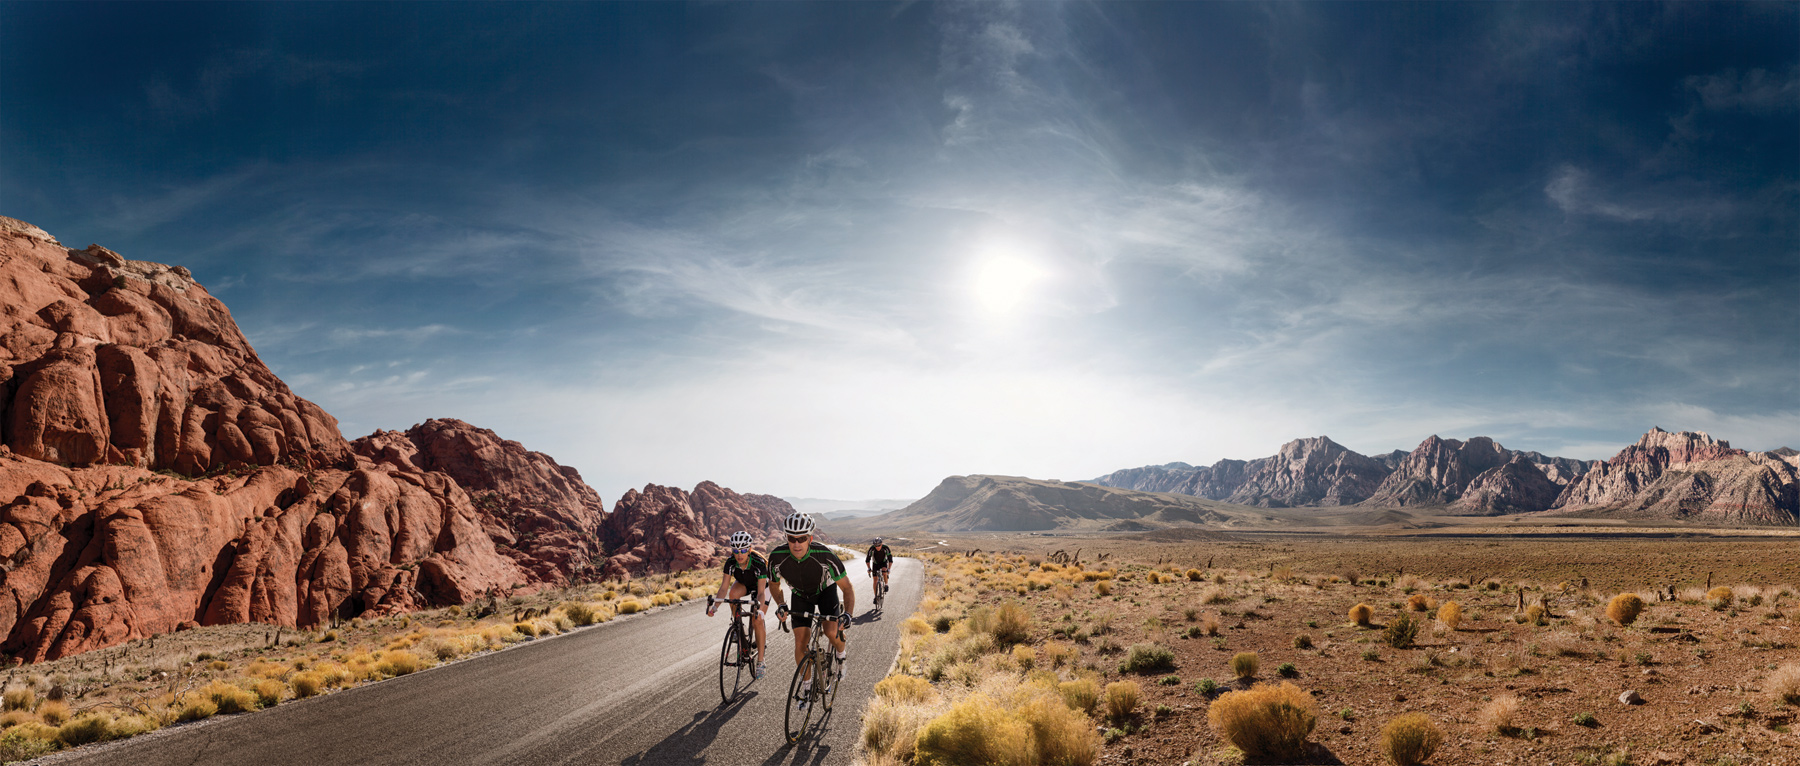 Bike through Red Rock Canyon Natural Conservation Area